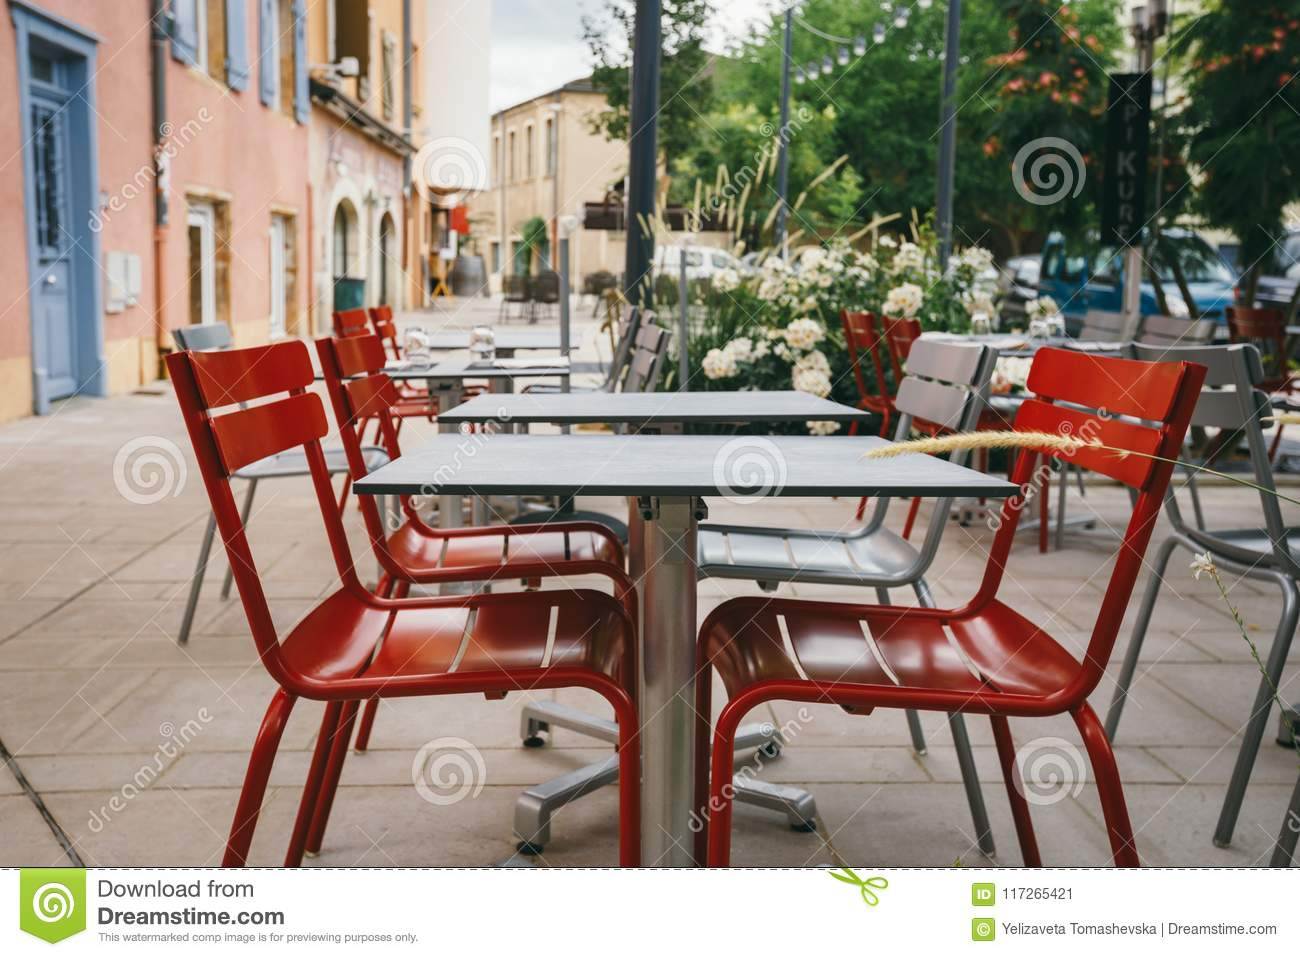 Theme Cafes And Restaurants Exterior Summer Terrace Of Bright Colors Of Street Cafe Shop In Europe In France Preserved Tables Wi Stock Image Image Of Place Dining 117265421